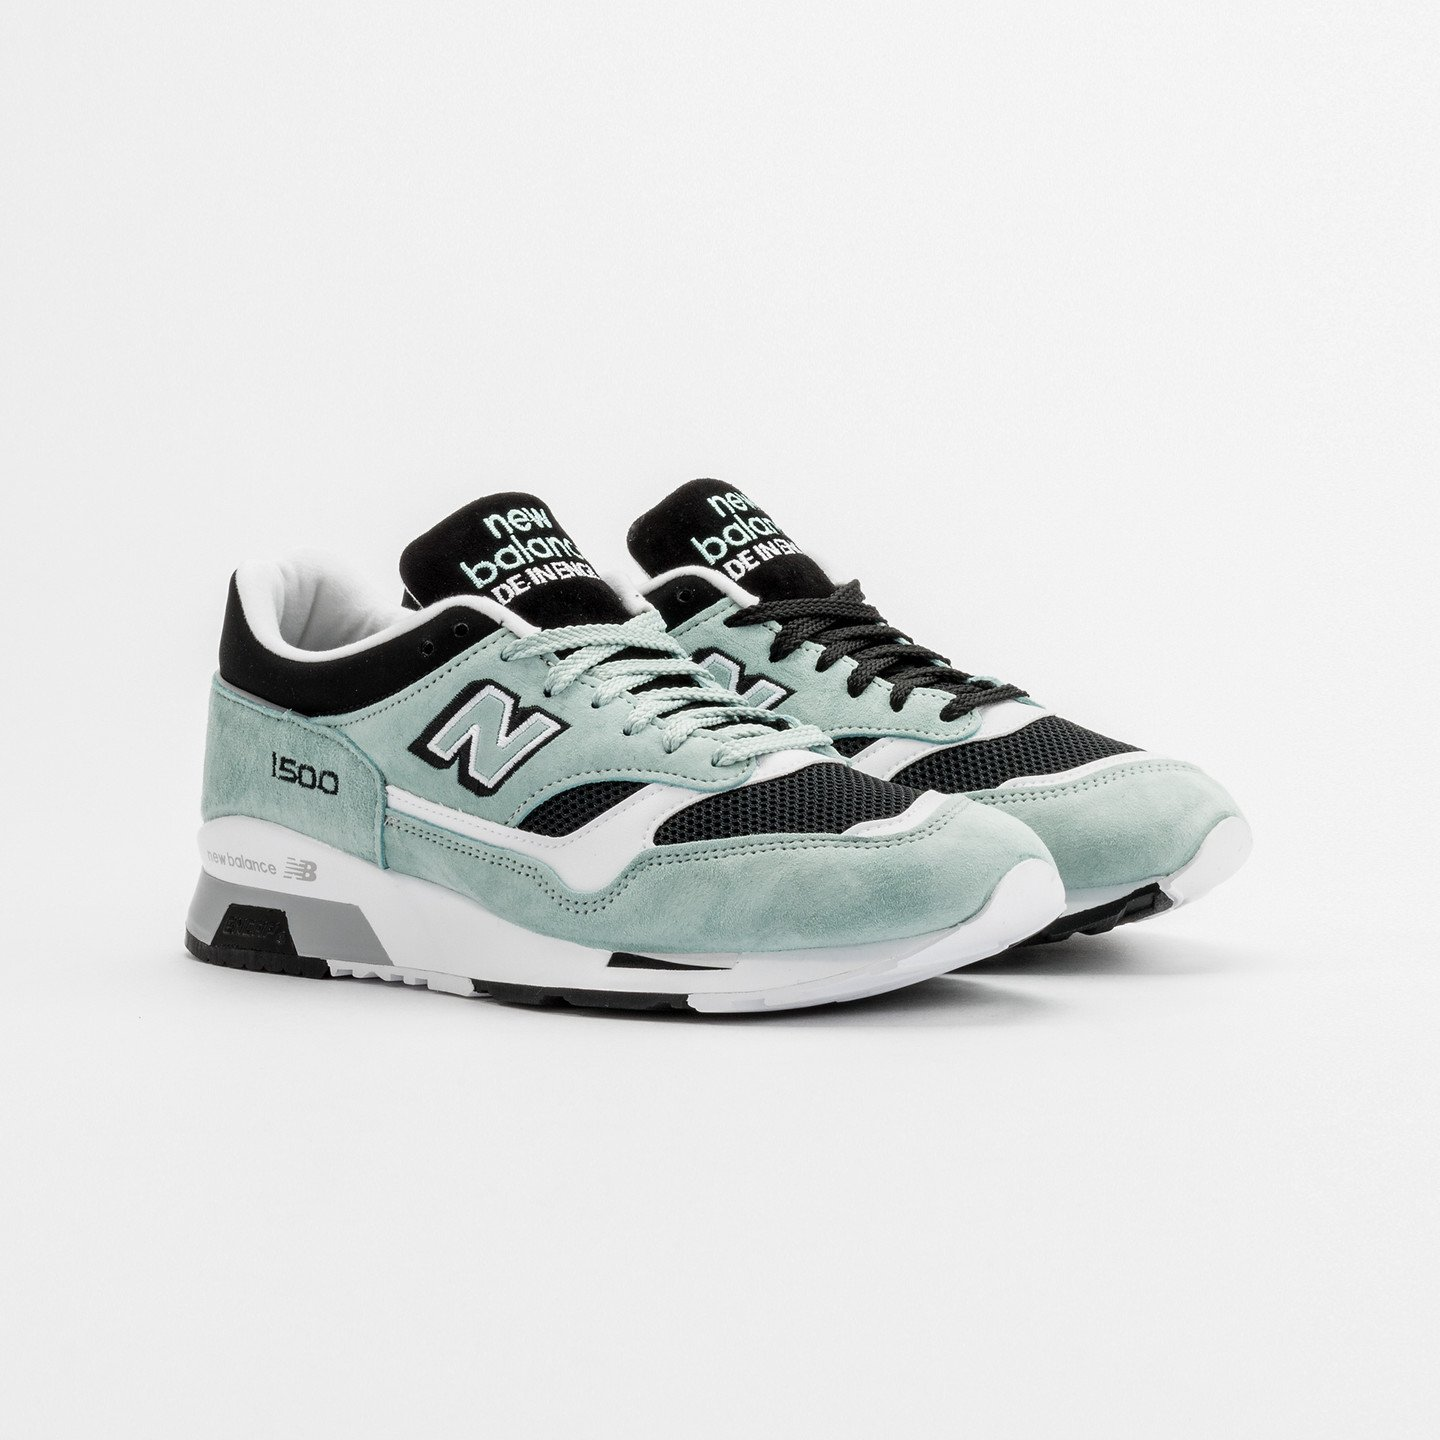 New Balance M1500 MGK - Made in England Mint / Black / White M1500MGK-44